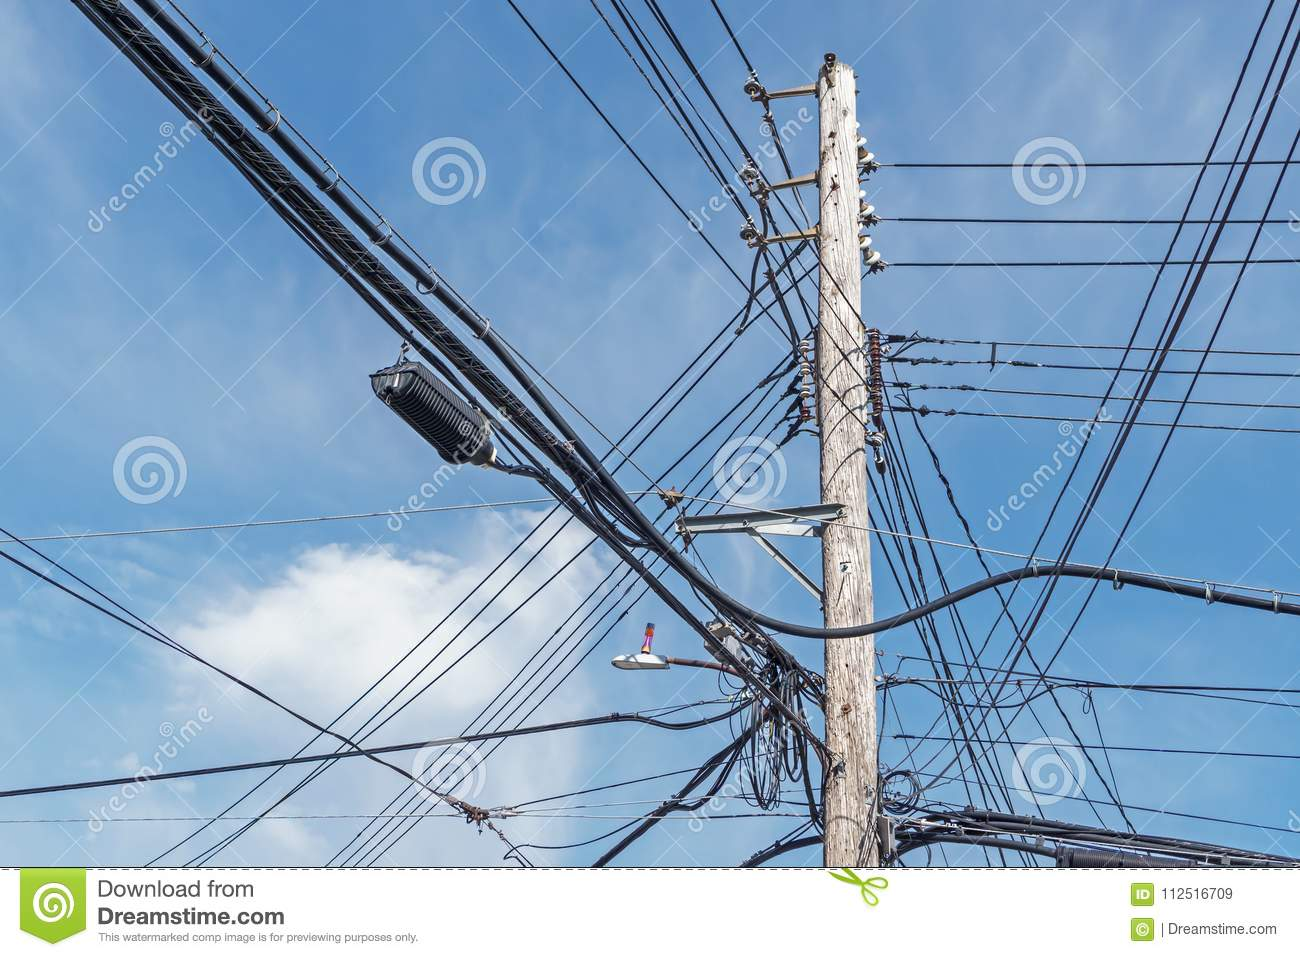 Distribution Capacitor Wiring Online Schematics Diagram Power Cap Tall Wooden Pole With Lots Of Overhead Wires Coiled Cables Ac 4